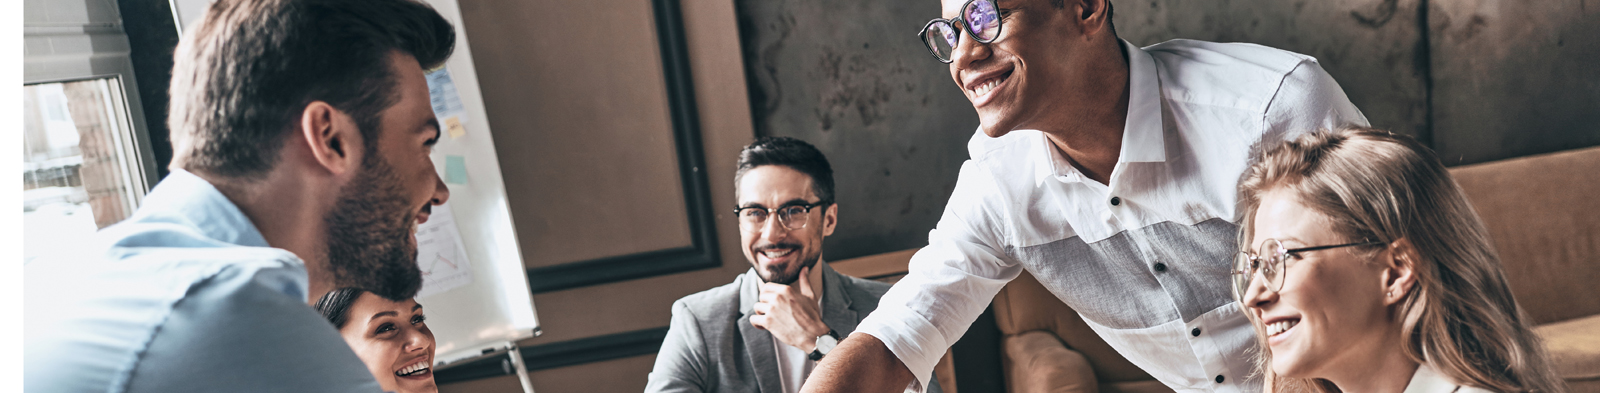 Smiling colleagues shaking hands in a boardroom